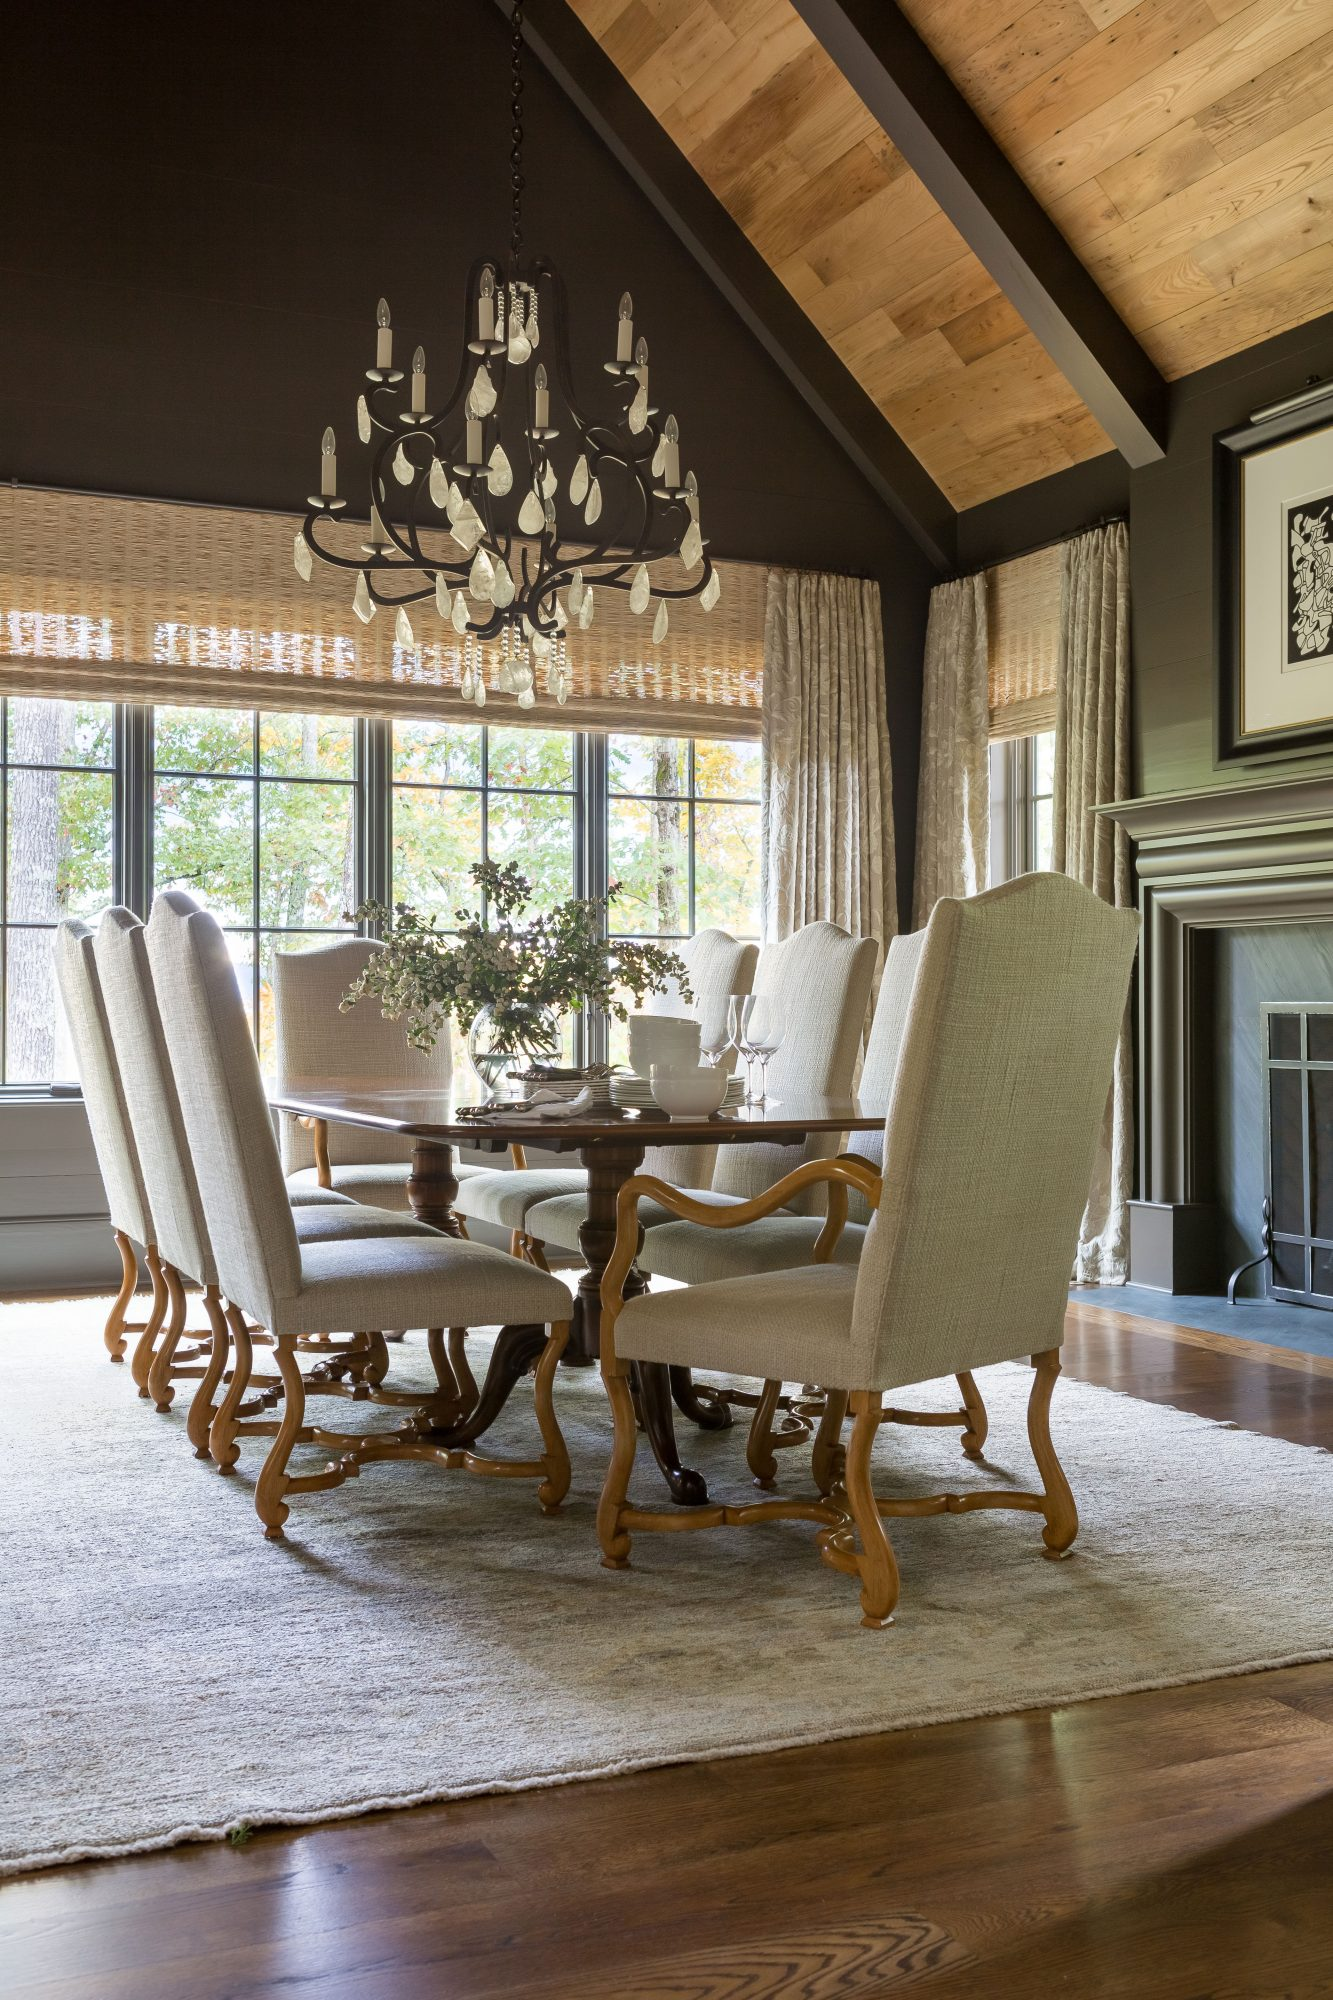 Dining Room with Rectangular Table and Vaulted Ceiling